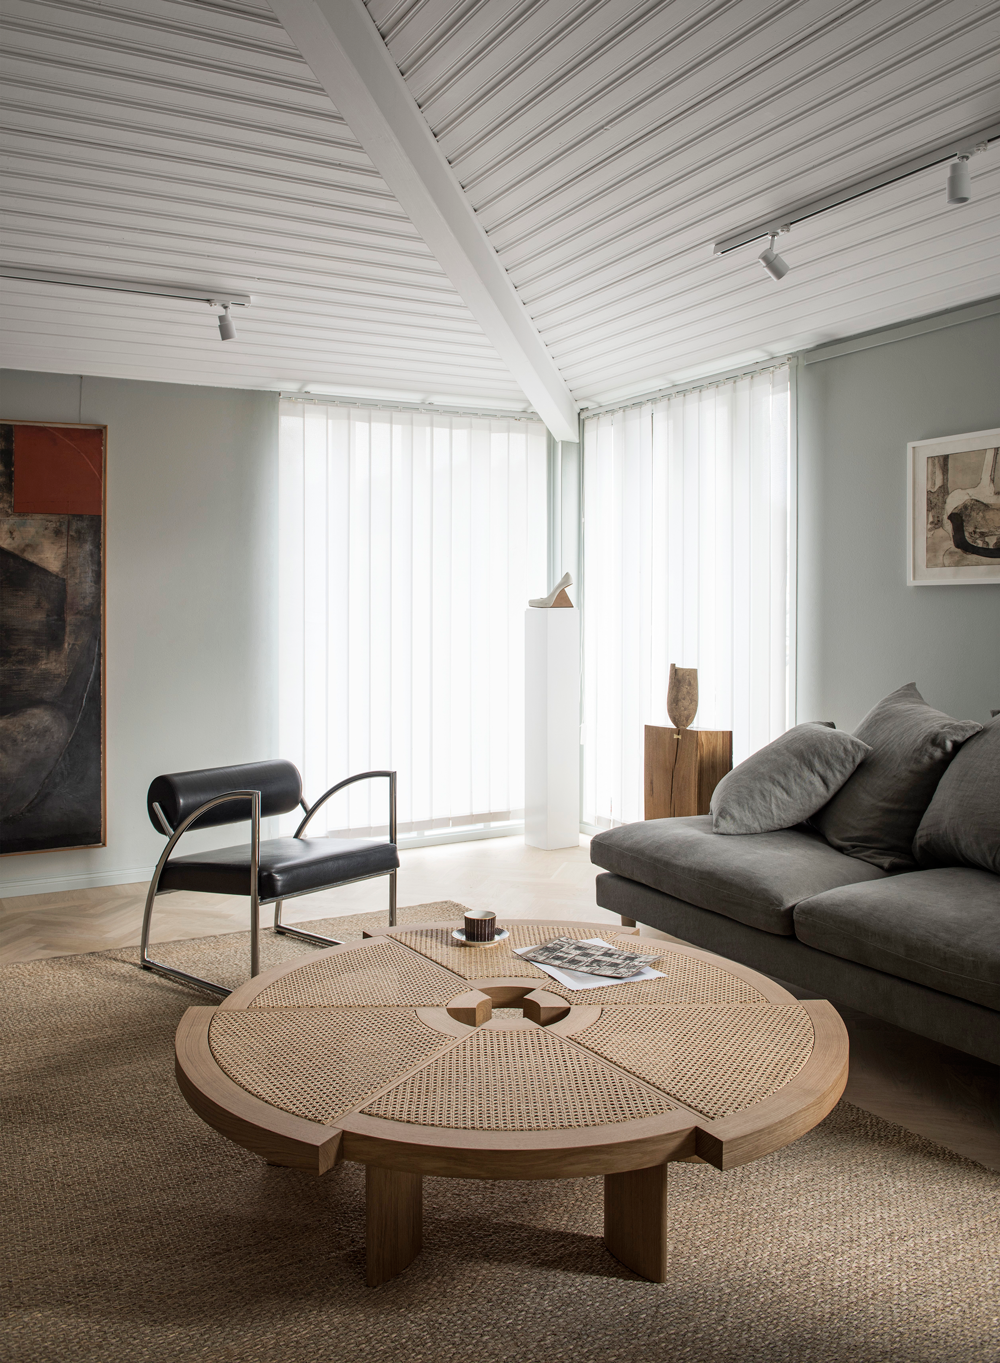 AMM blog: Tour the home of a Swedish fashion designer and actor in ...